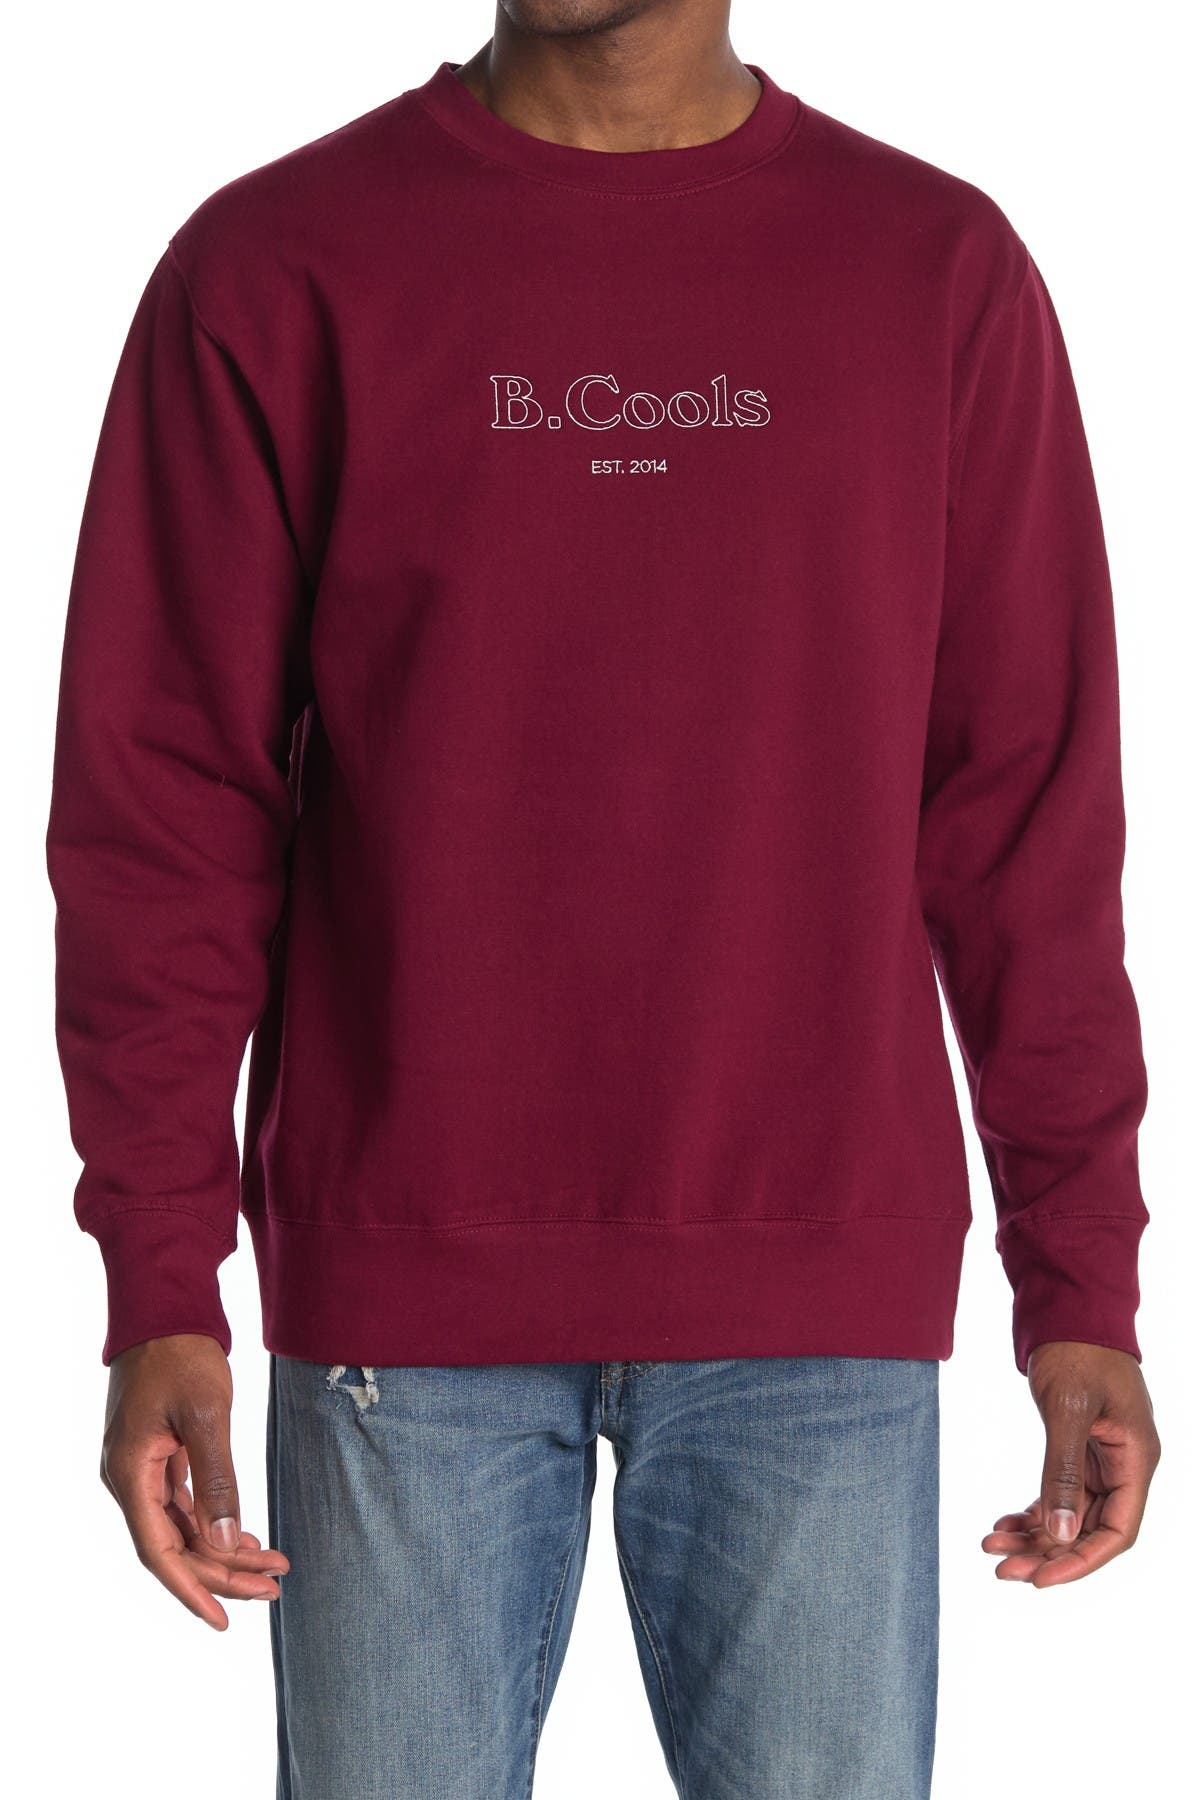 Image of Barney Cools Logo Crew Neck Sweatshirt